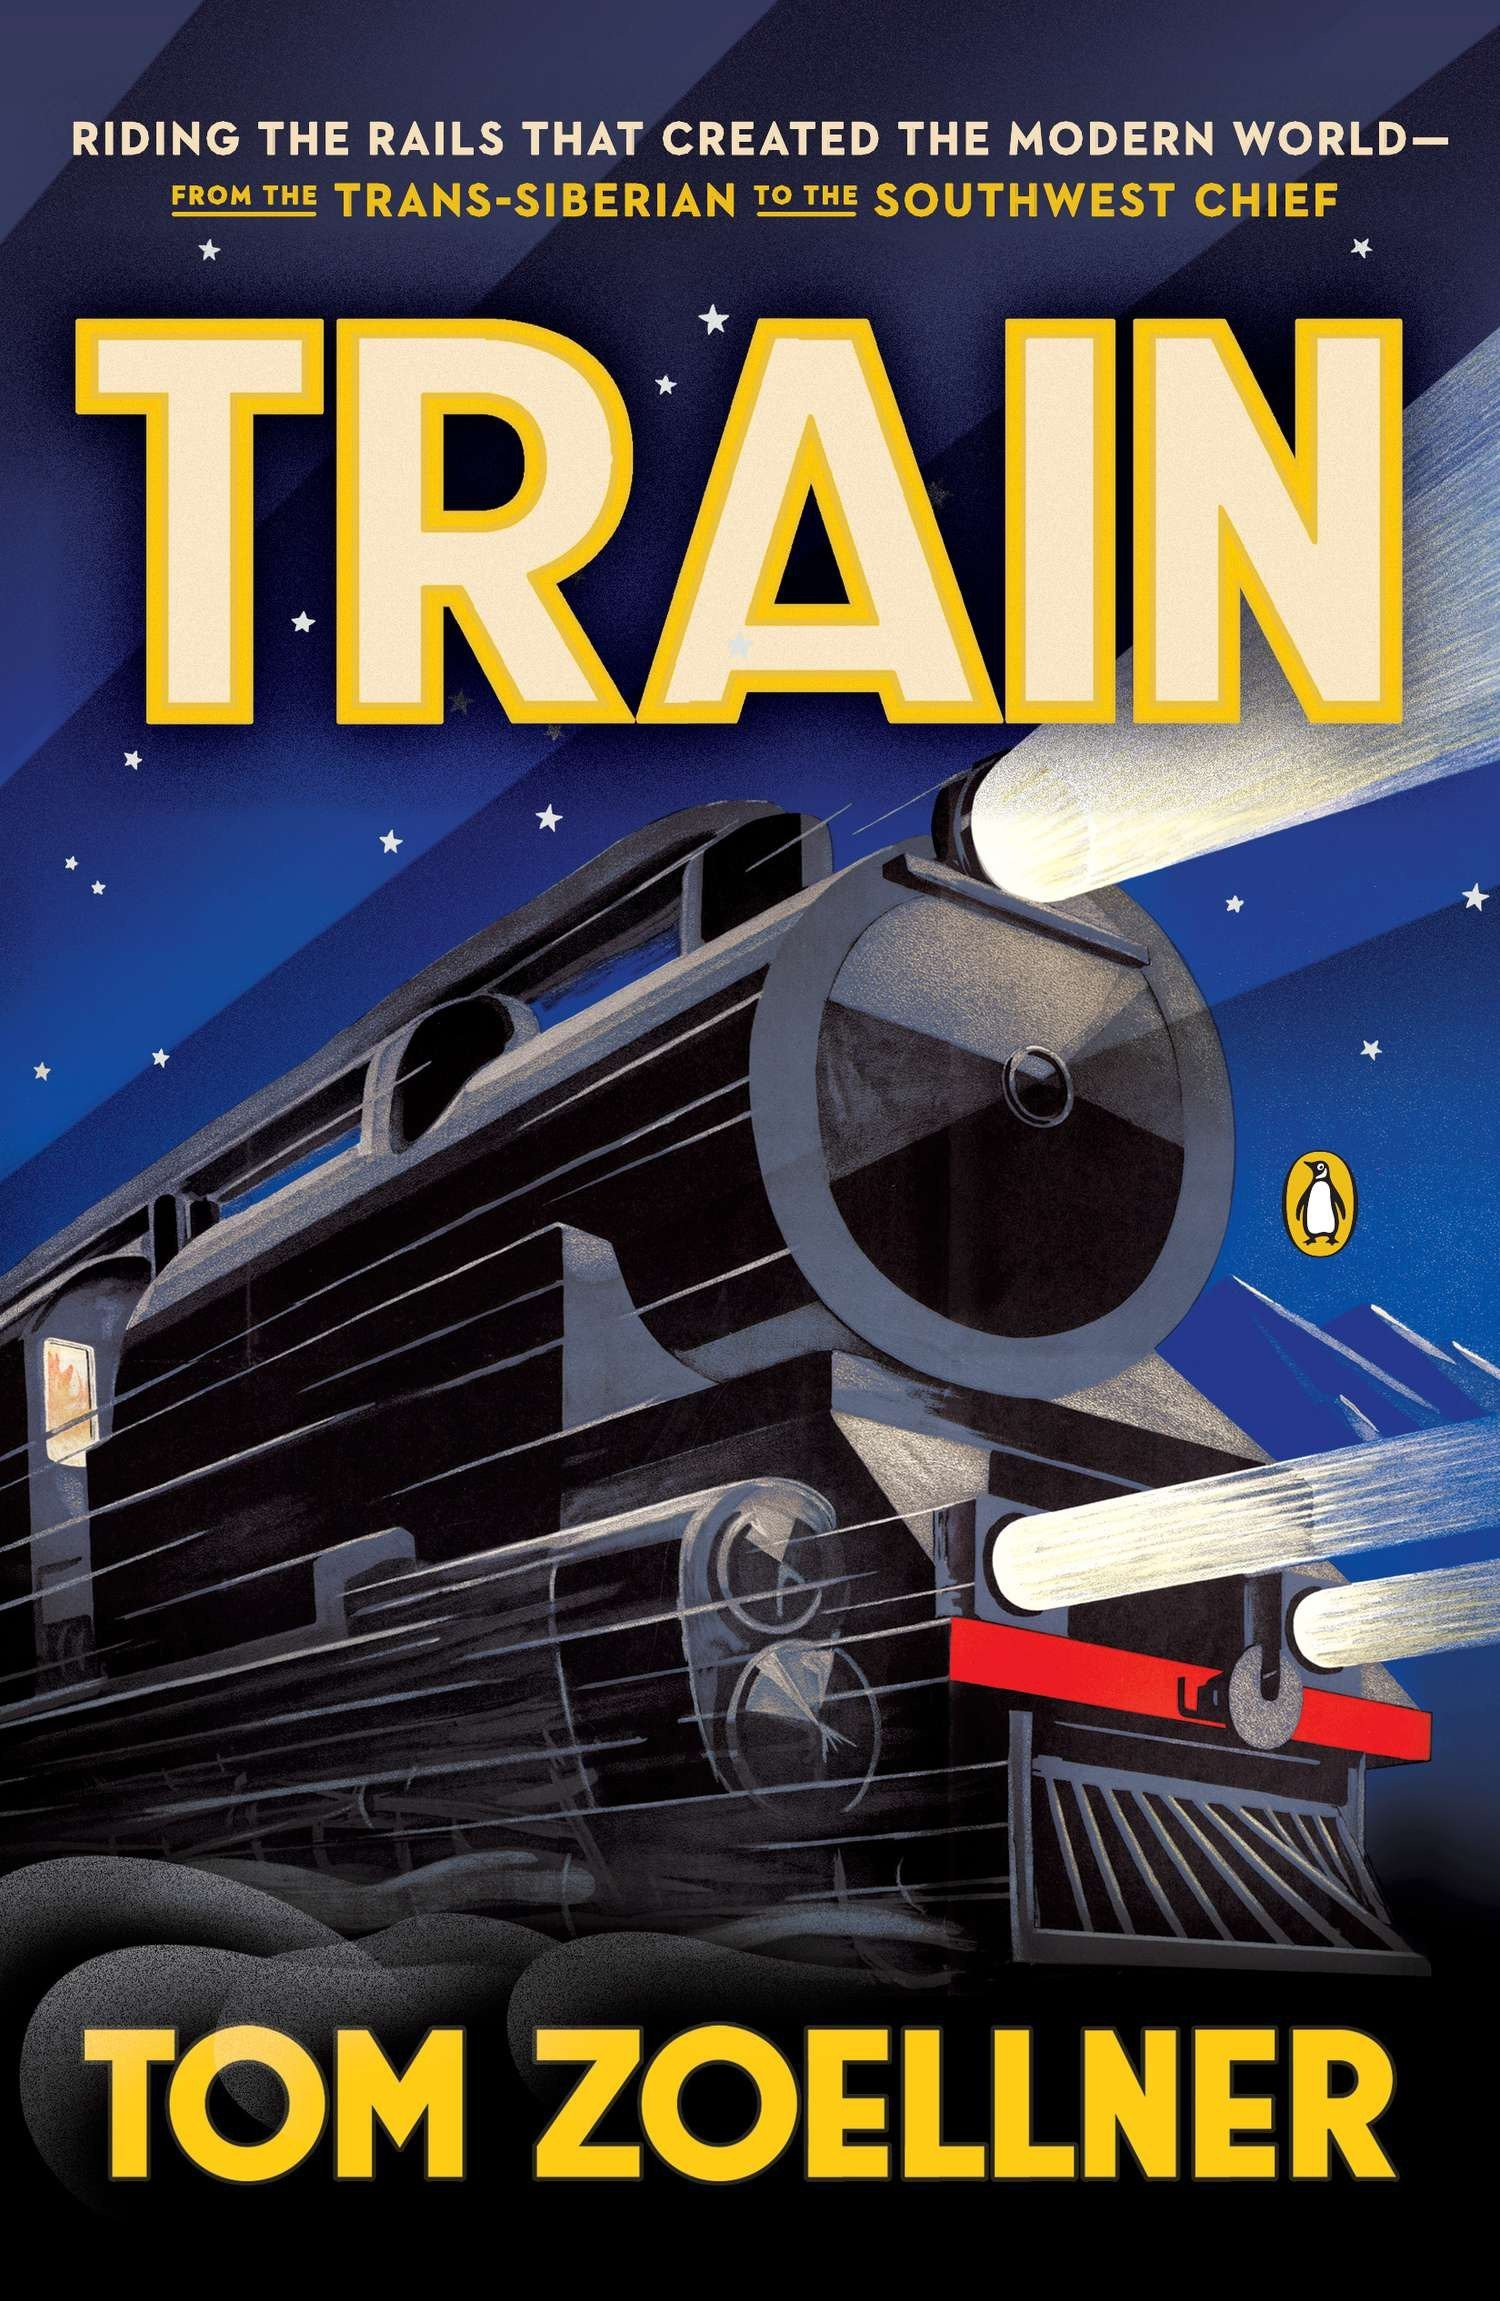 Read Online Train: Riding the Rails That Created the Modern World--from the Trans-Siberian to the Southwest Chief PDF